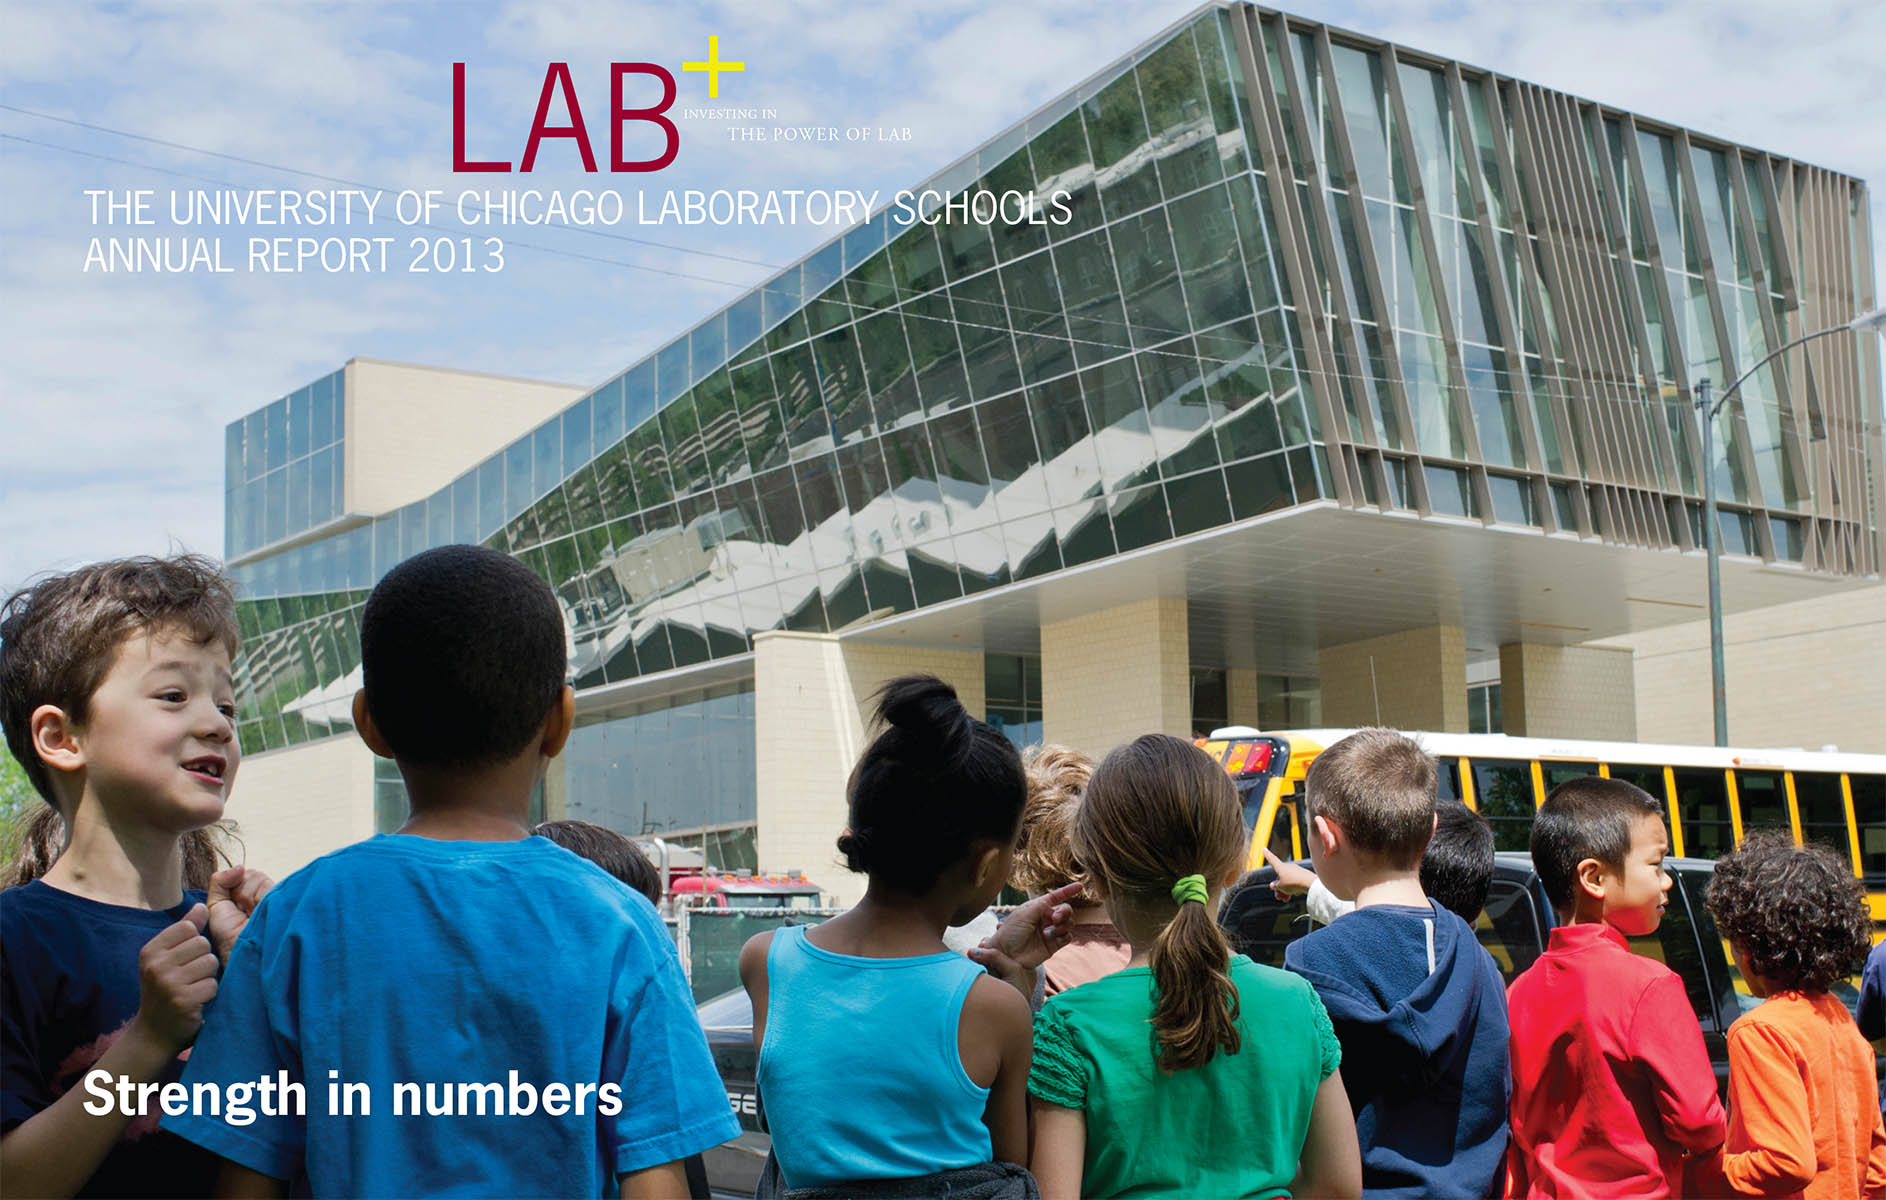 Lab_2013_ar_cover